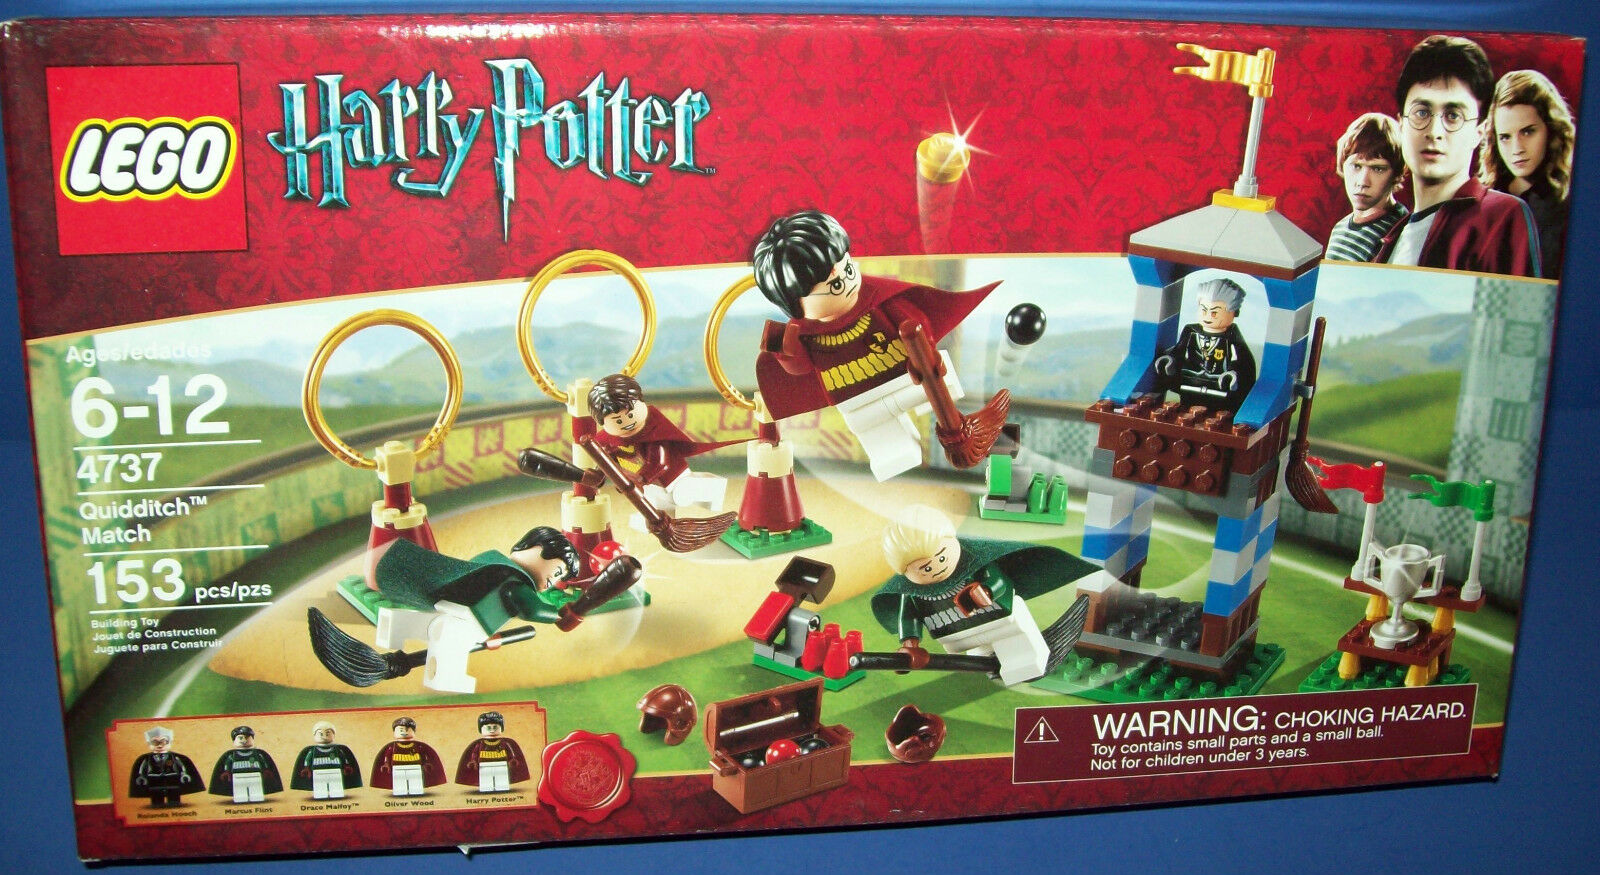 LEGO Harry Potter 4737 - QUIDDITCH PRACTICE   Retirojo New in Sealed Box NISB